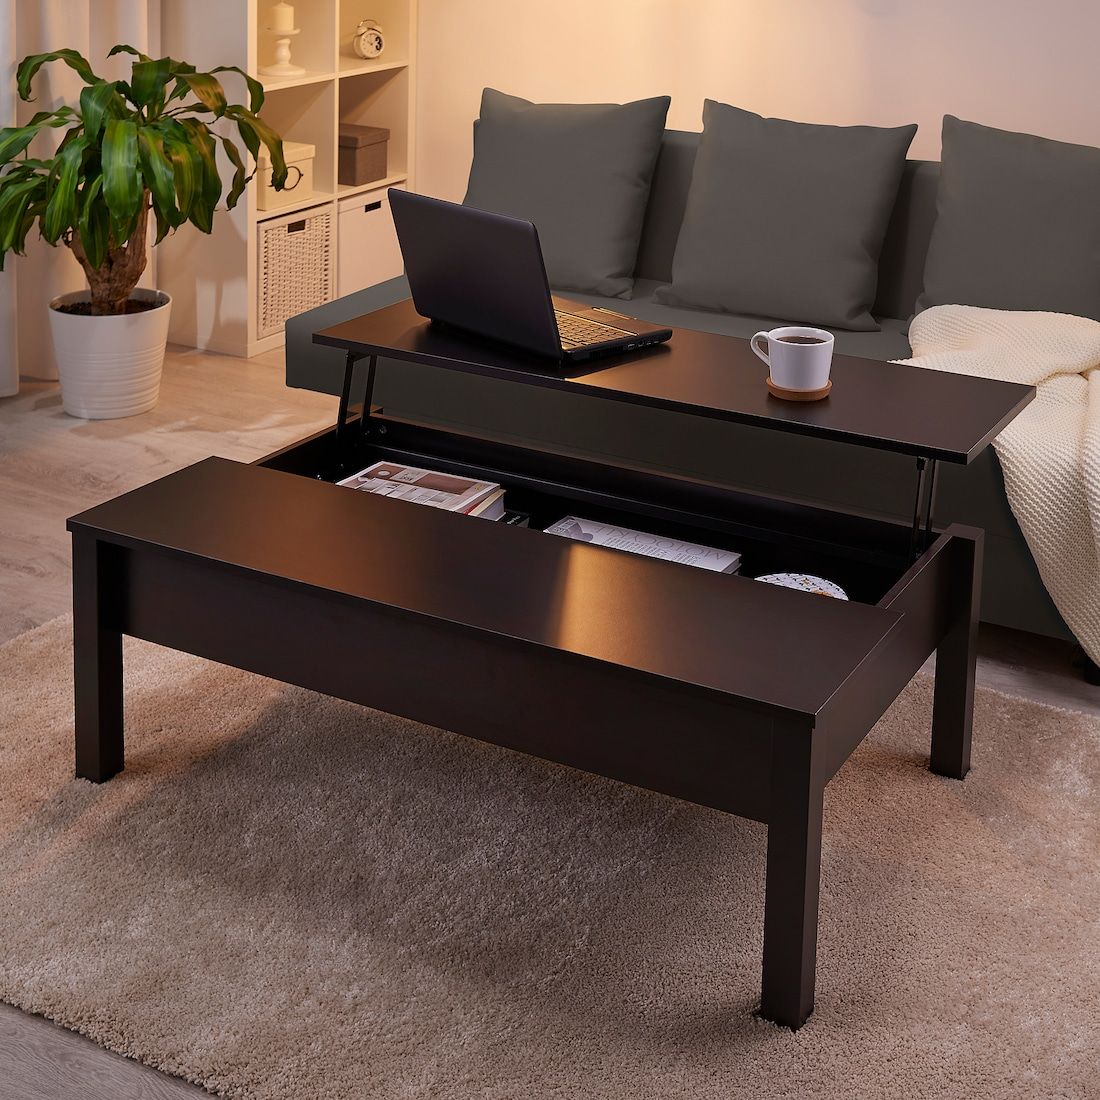 Trulstorp Coffee Table Black Brown 45 1 4x27 1 2 Ikea Coffee Table Living Room Furniture Layout Brown Coffee Table [ 1100 x 1100 Pixel ]